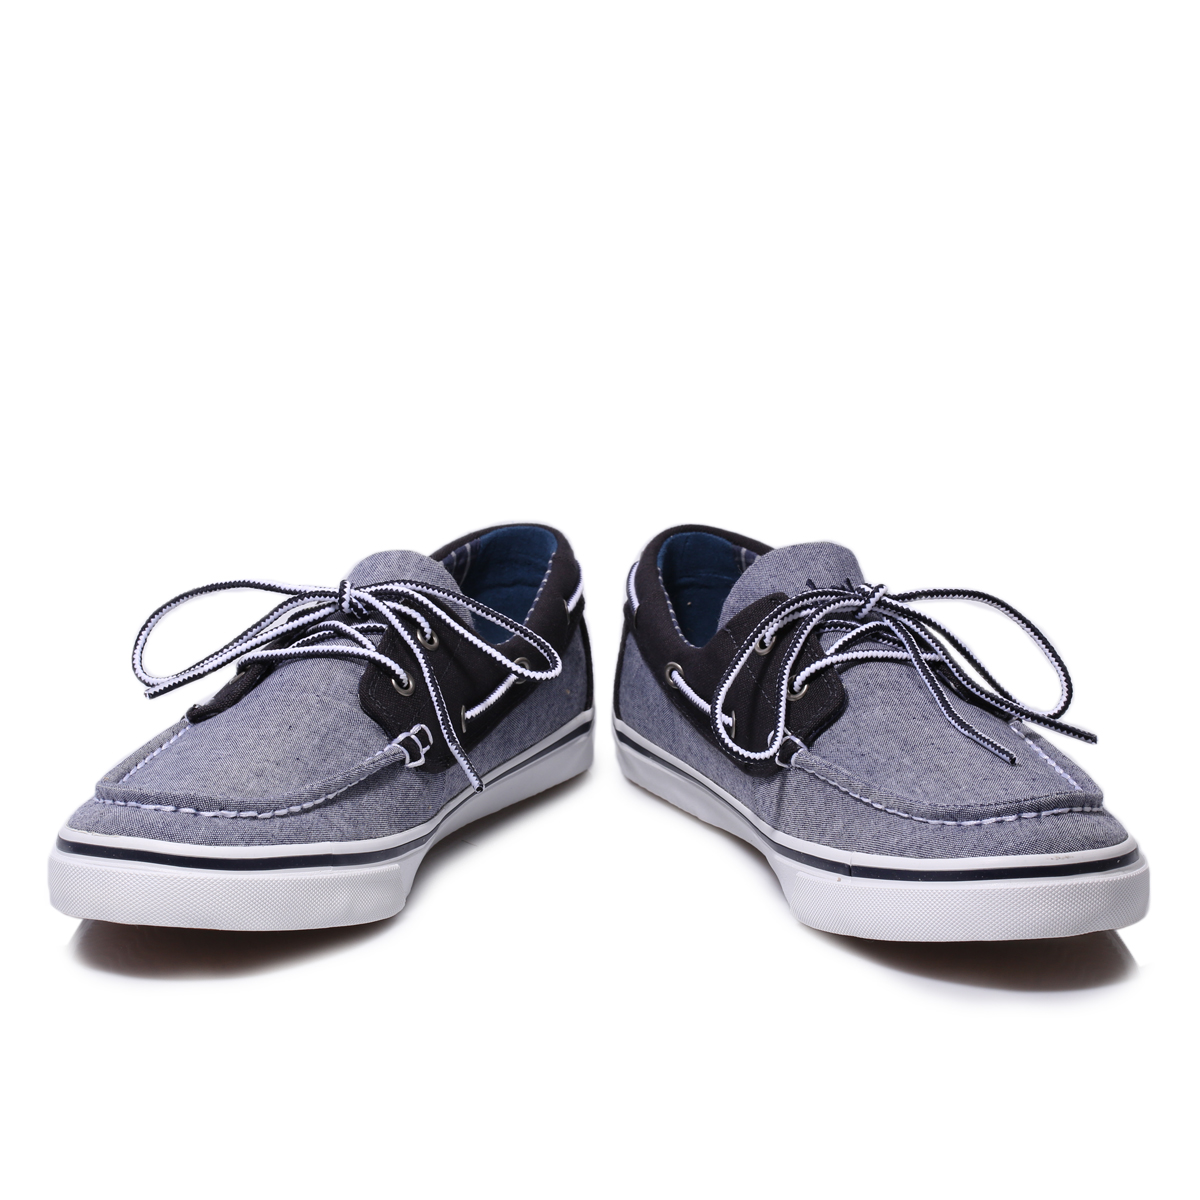 Cheap Womens Deck Shoes